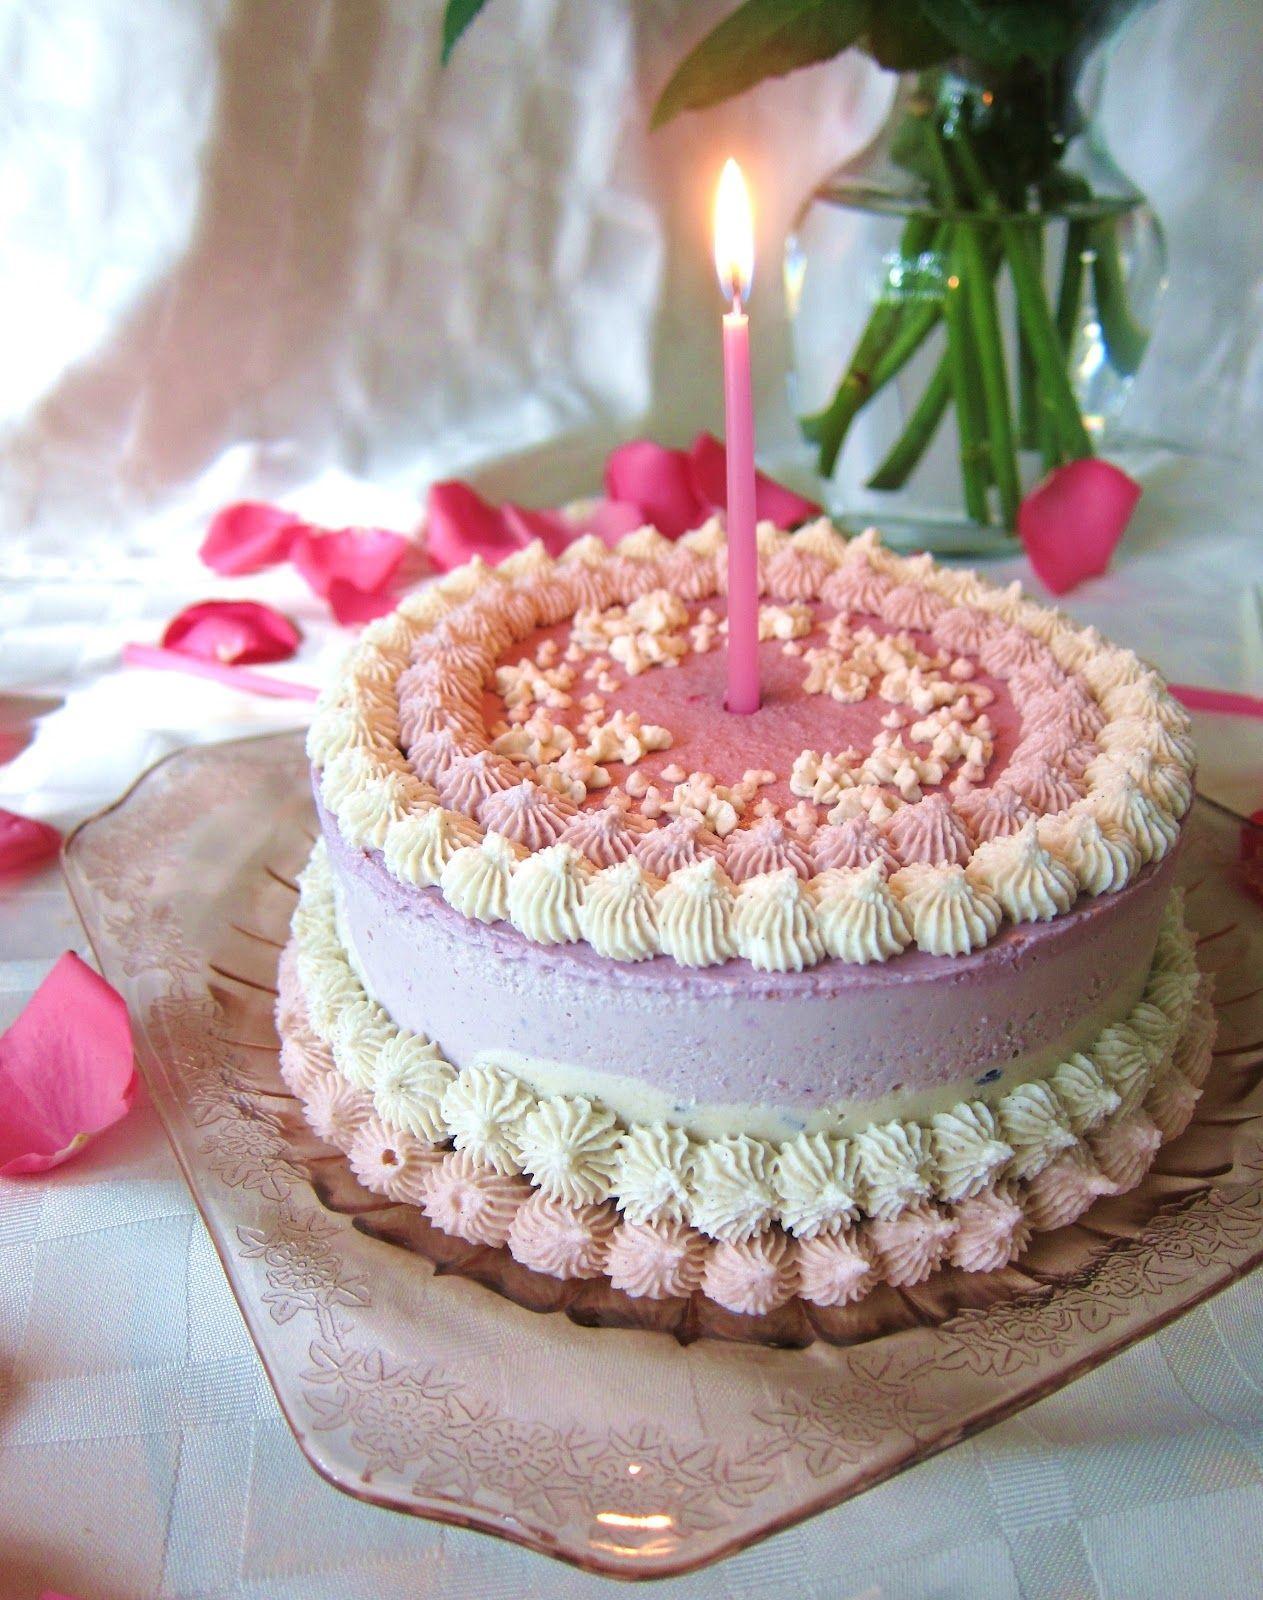 Most Fragrant Candles Beautiful Birthday Cakes Beautiful Birthday Cake